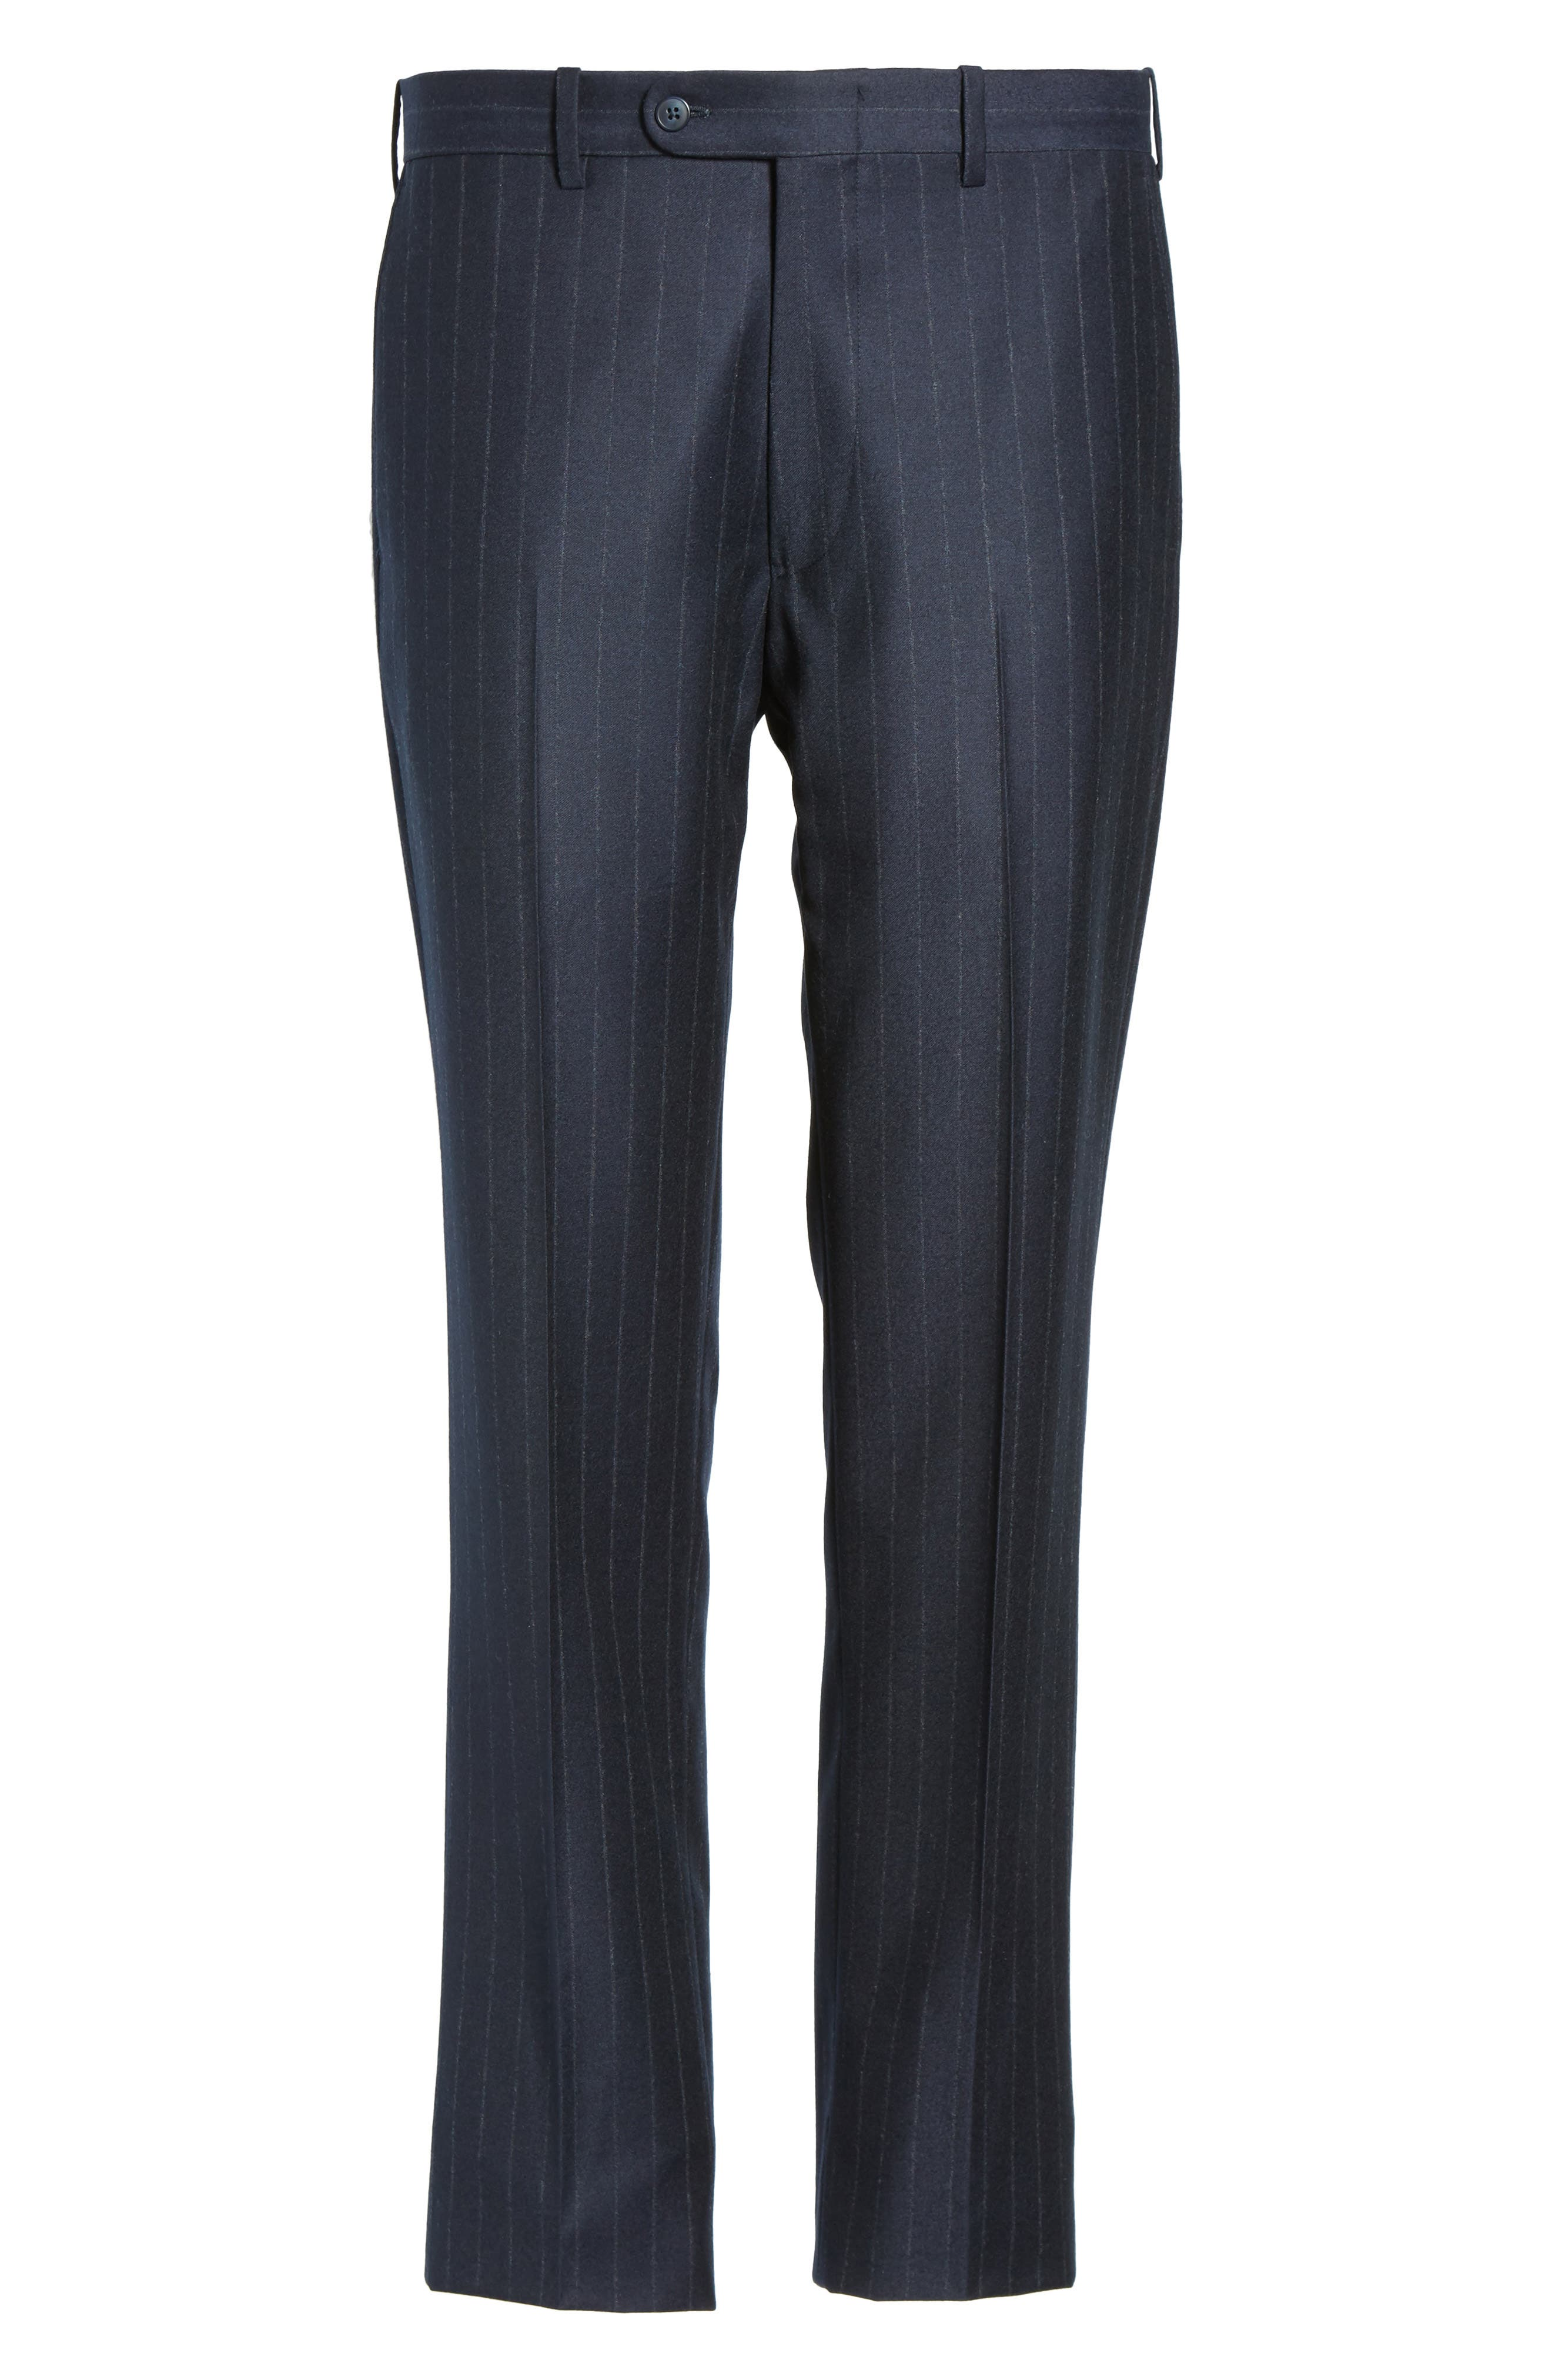 Flat Front Chalk Stripe Wool Trousers,                             Alternate thumbnail 6, color,                             Navy